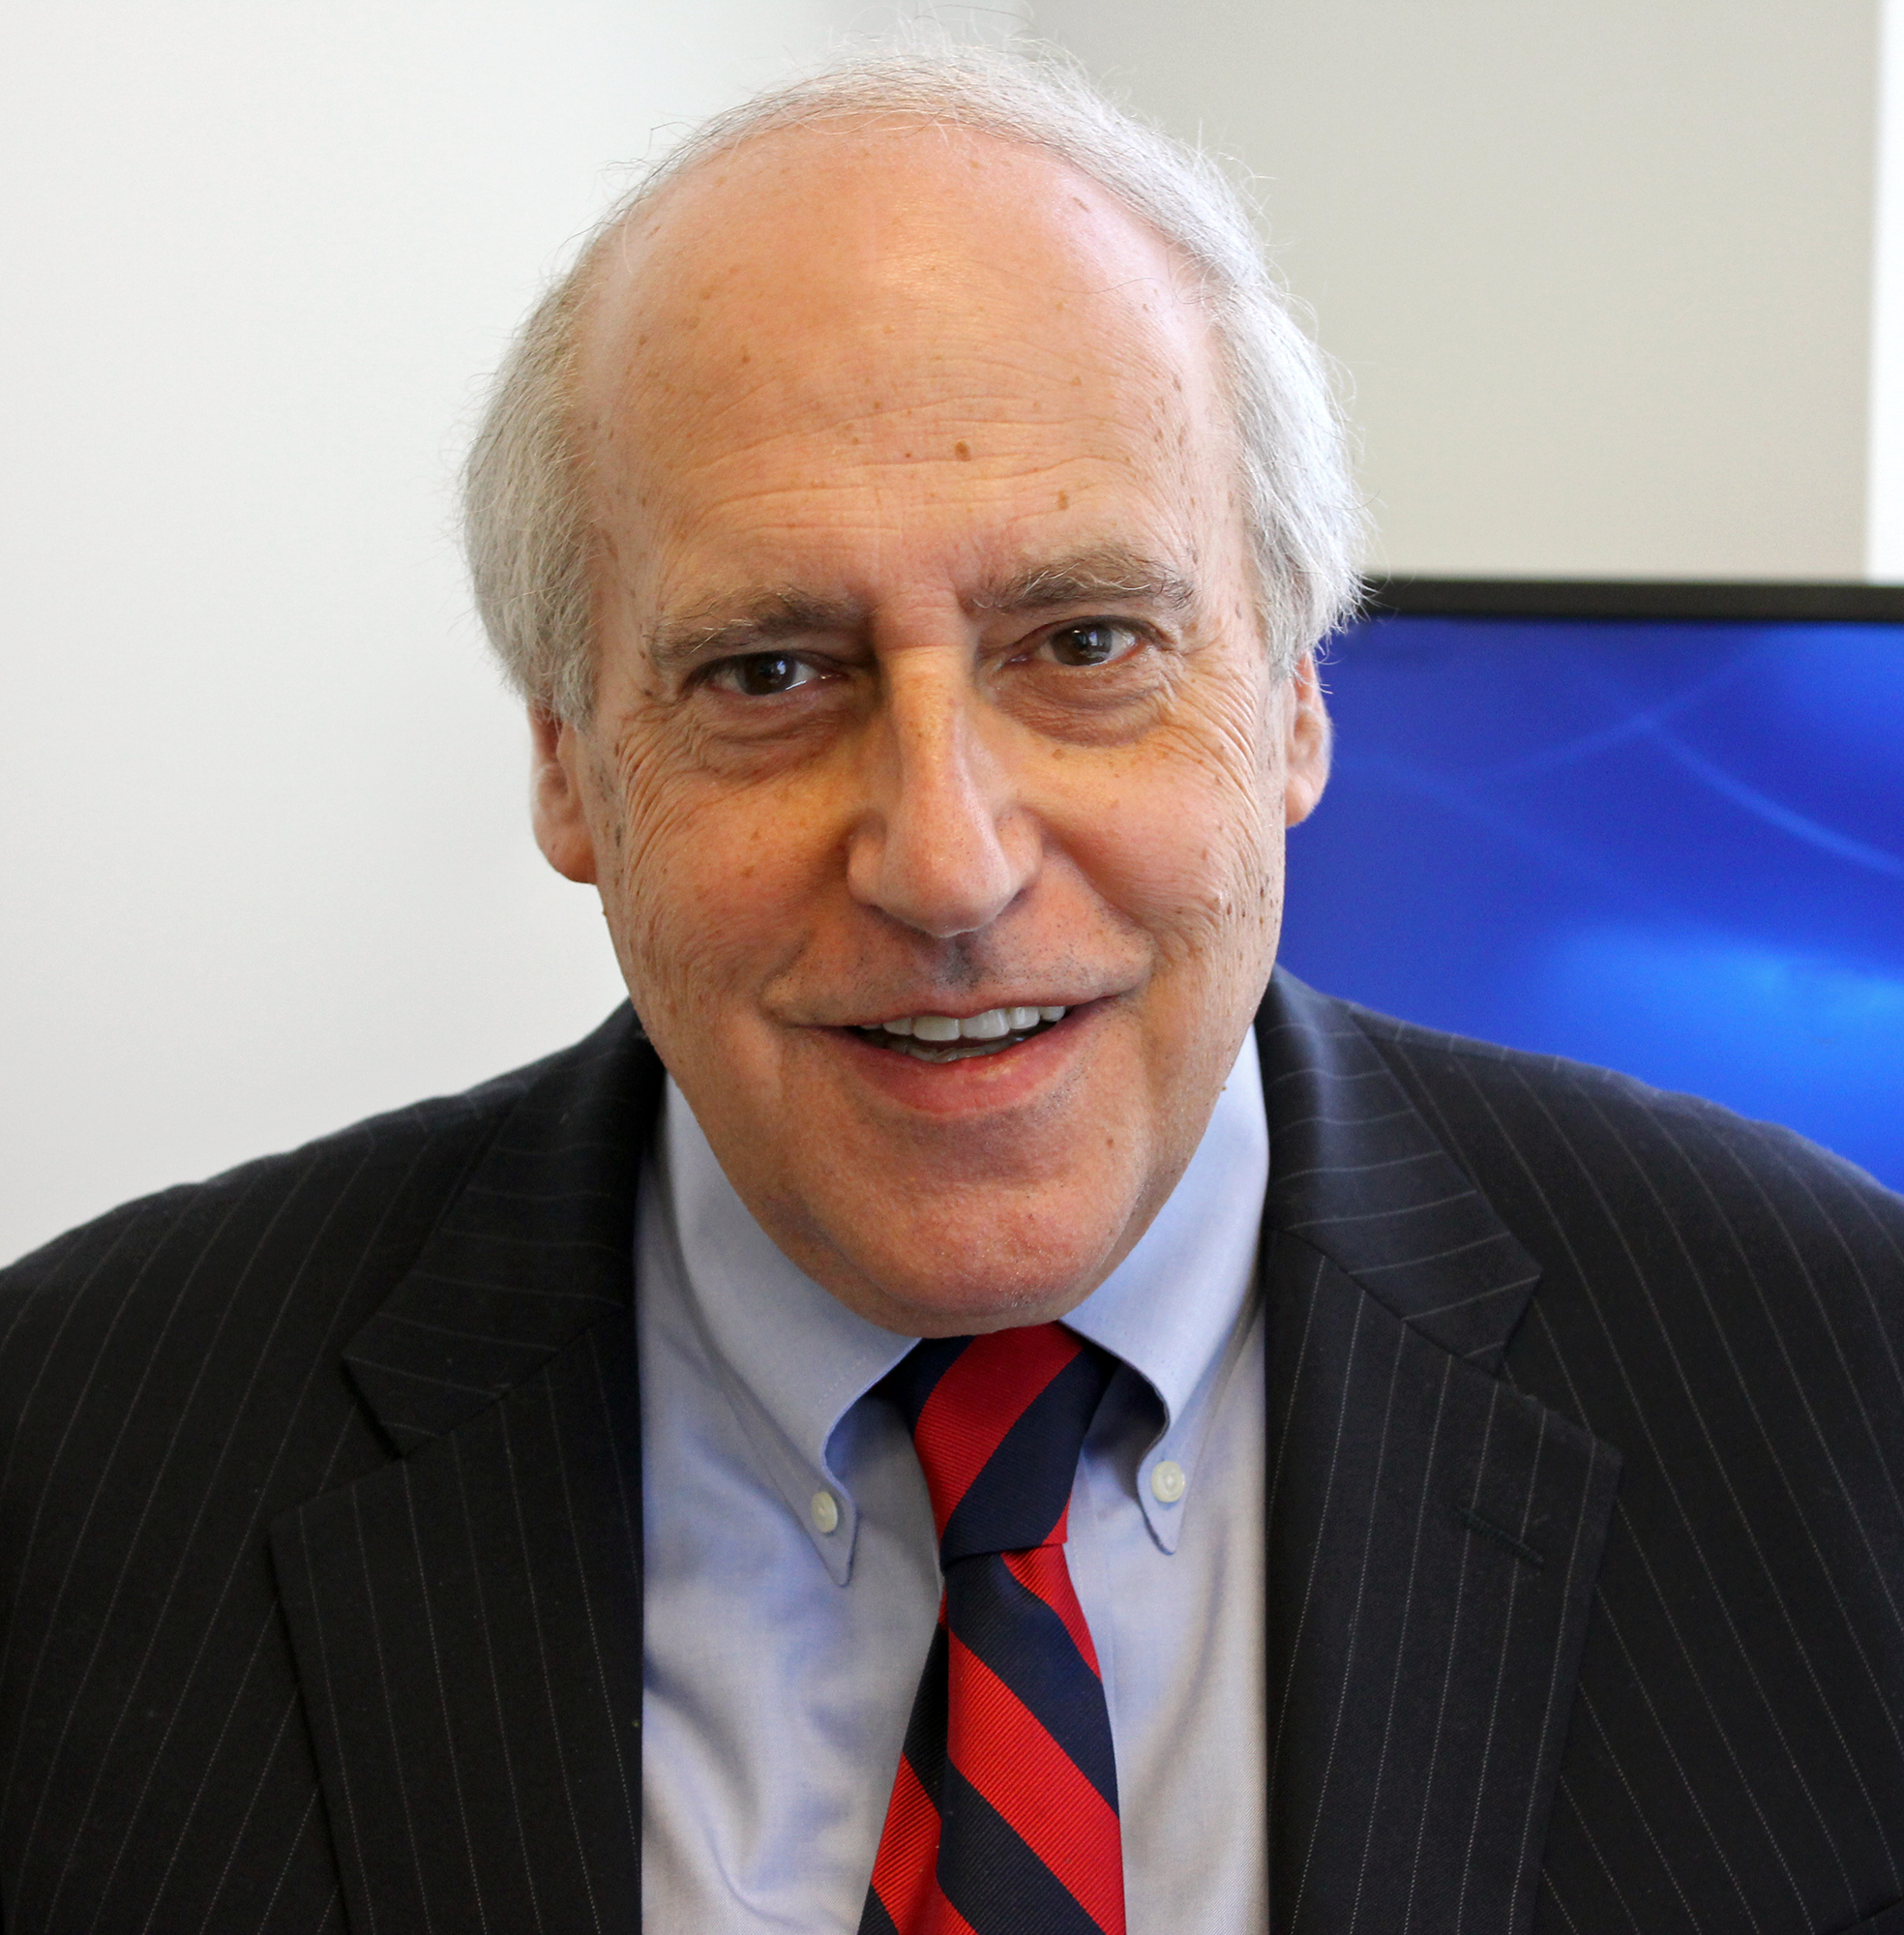 Dan Glickman, Professor of Agriculture and Nutrition, Tufts University